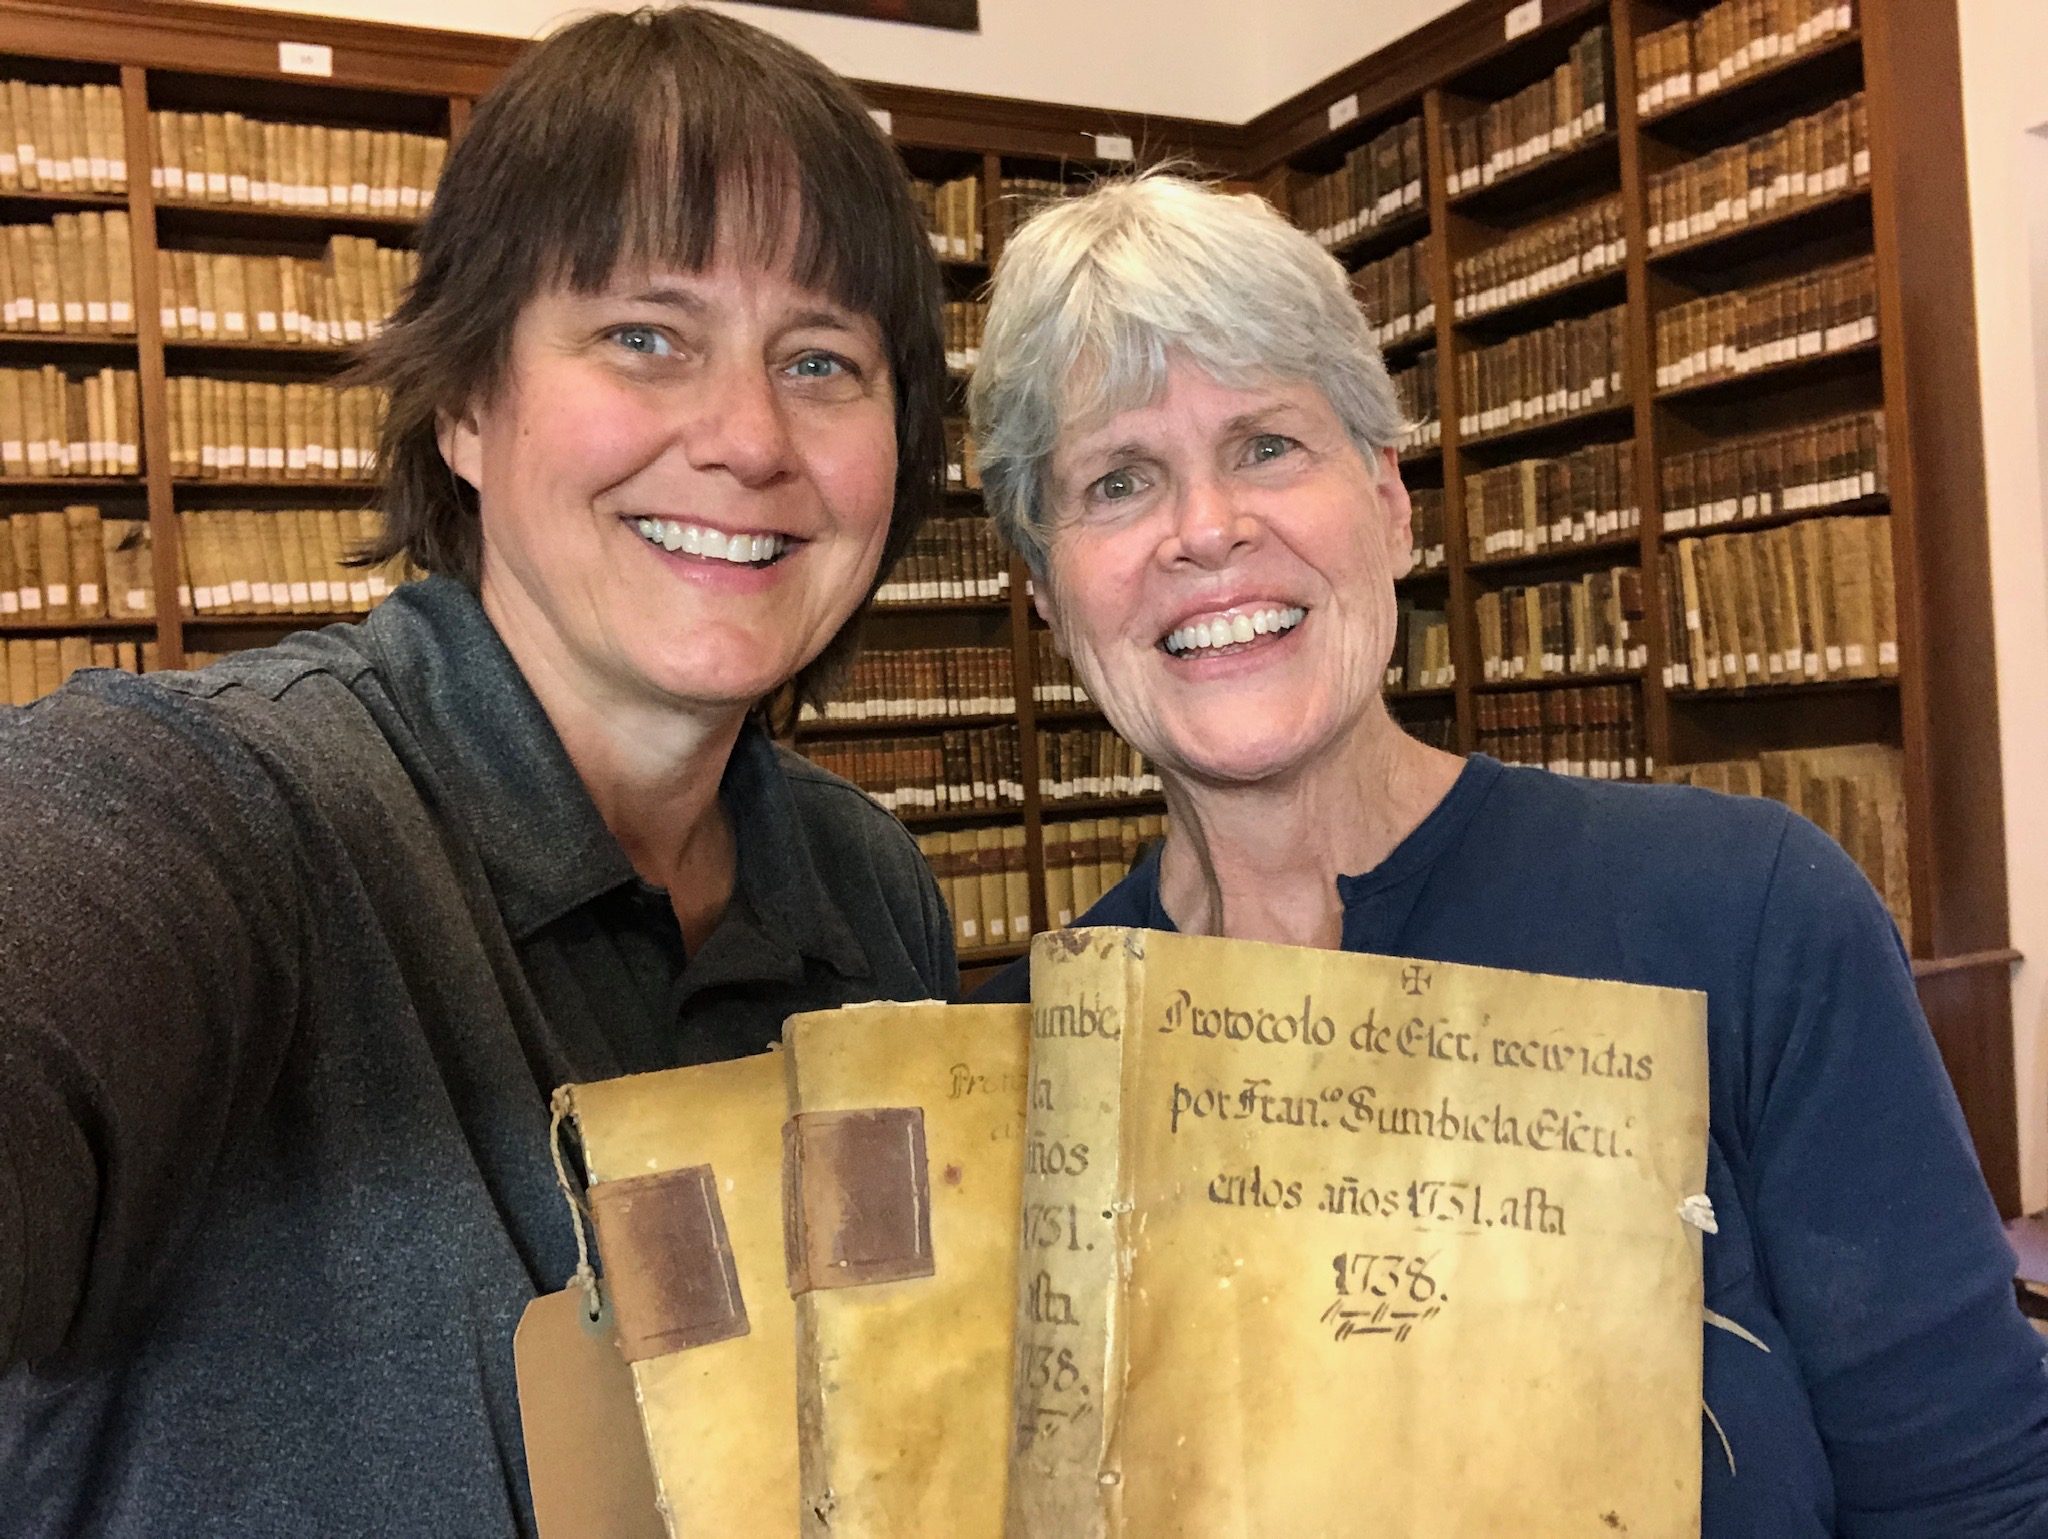 Senior missionaries Sister Klafke and Sister Rife hold the last three books from the 18th-century selection of the archive. The two friends are currently serving a records preservation mission in Spain.